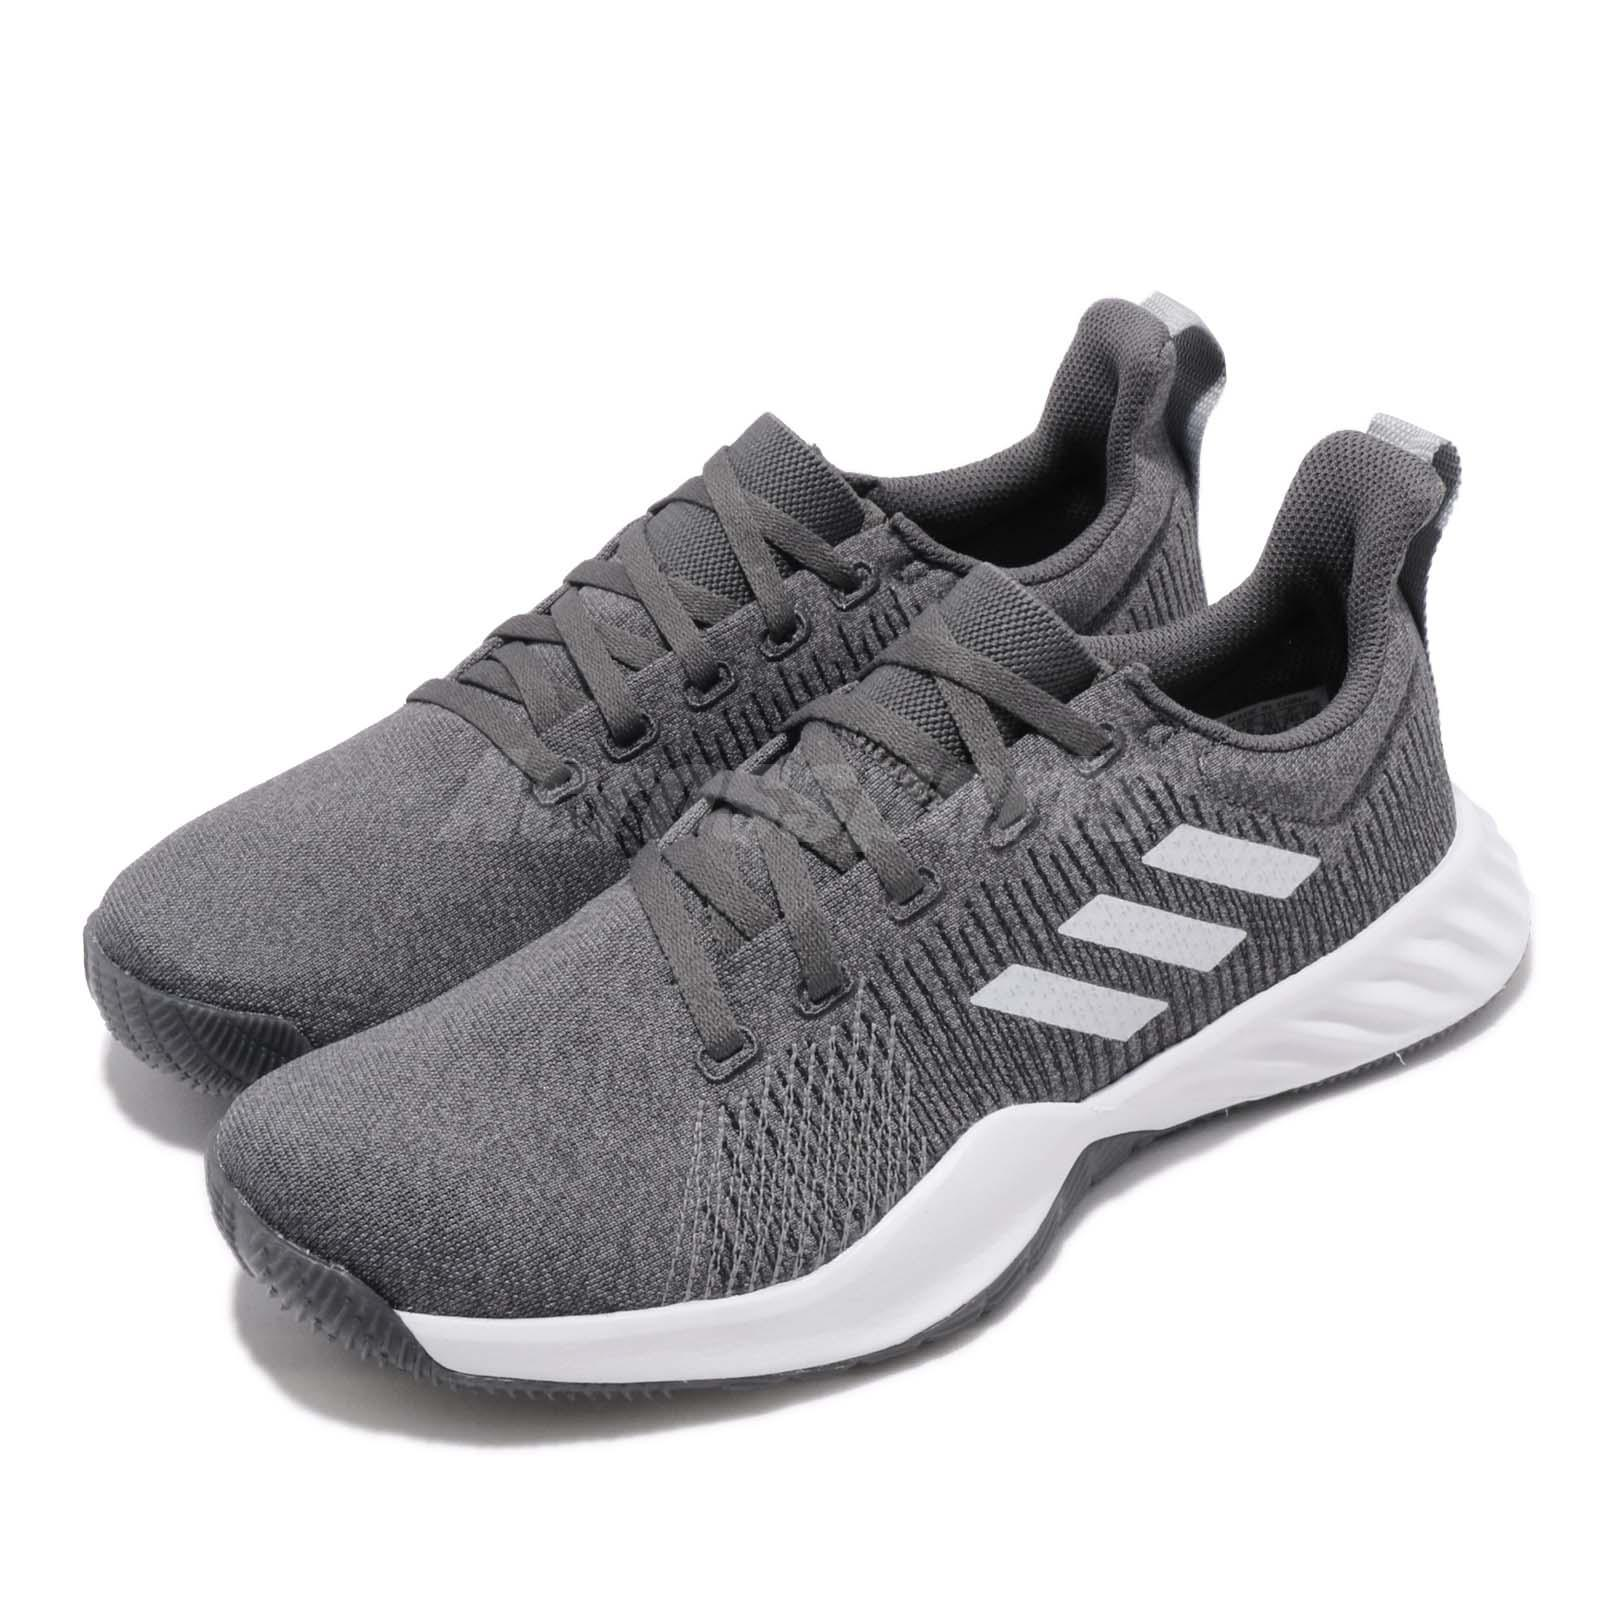 Details about adidas Solar LT Trainers W Grey White Women Cross Training  Shoes Sneakers BB7230 ef244d2e0b